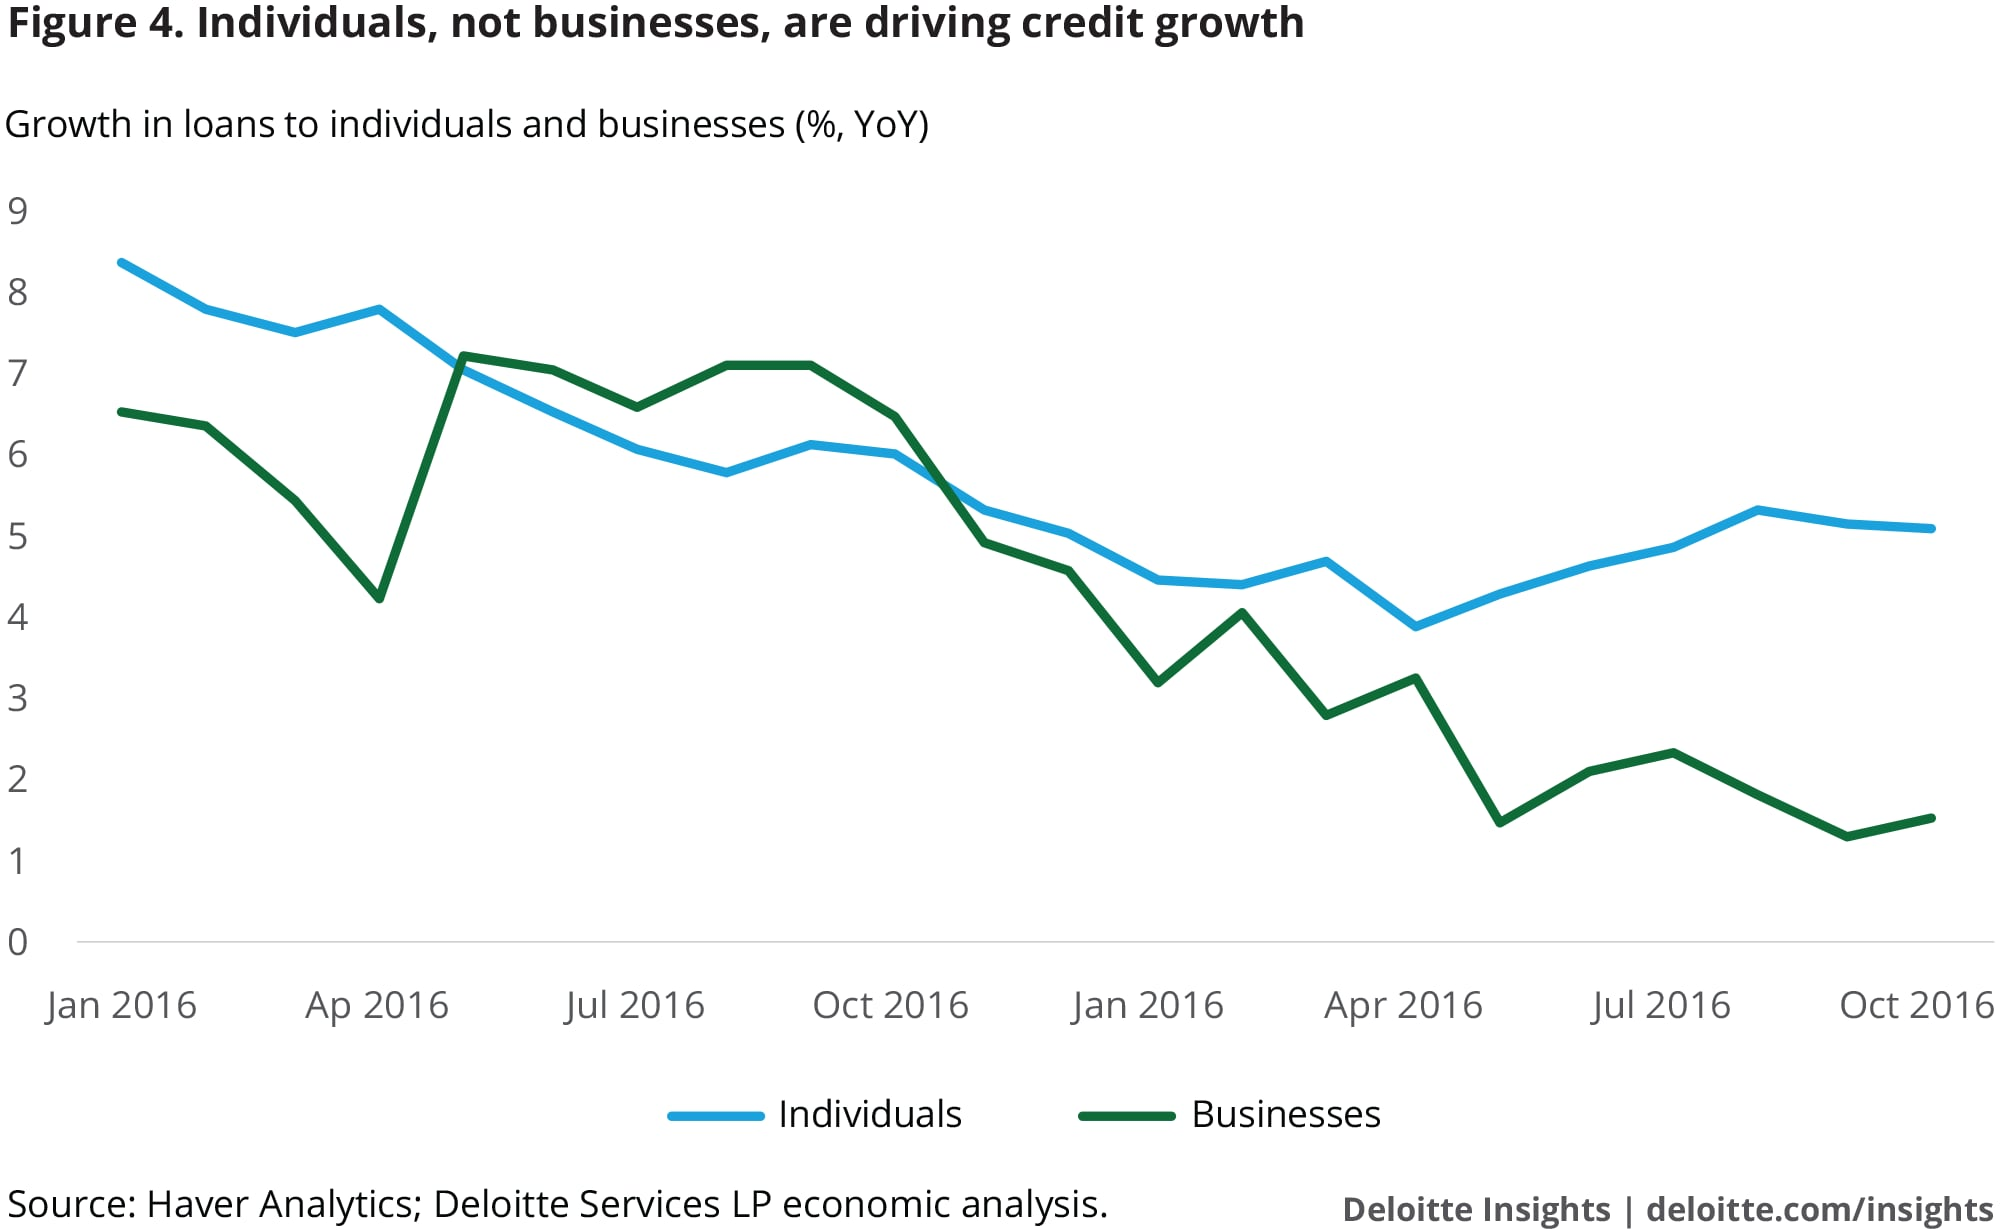 Individuals, not businesses, are driving credit growth